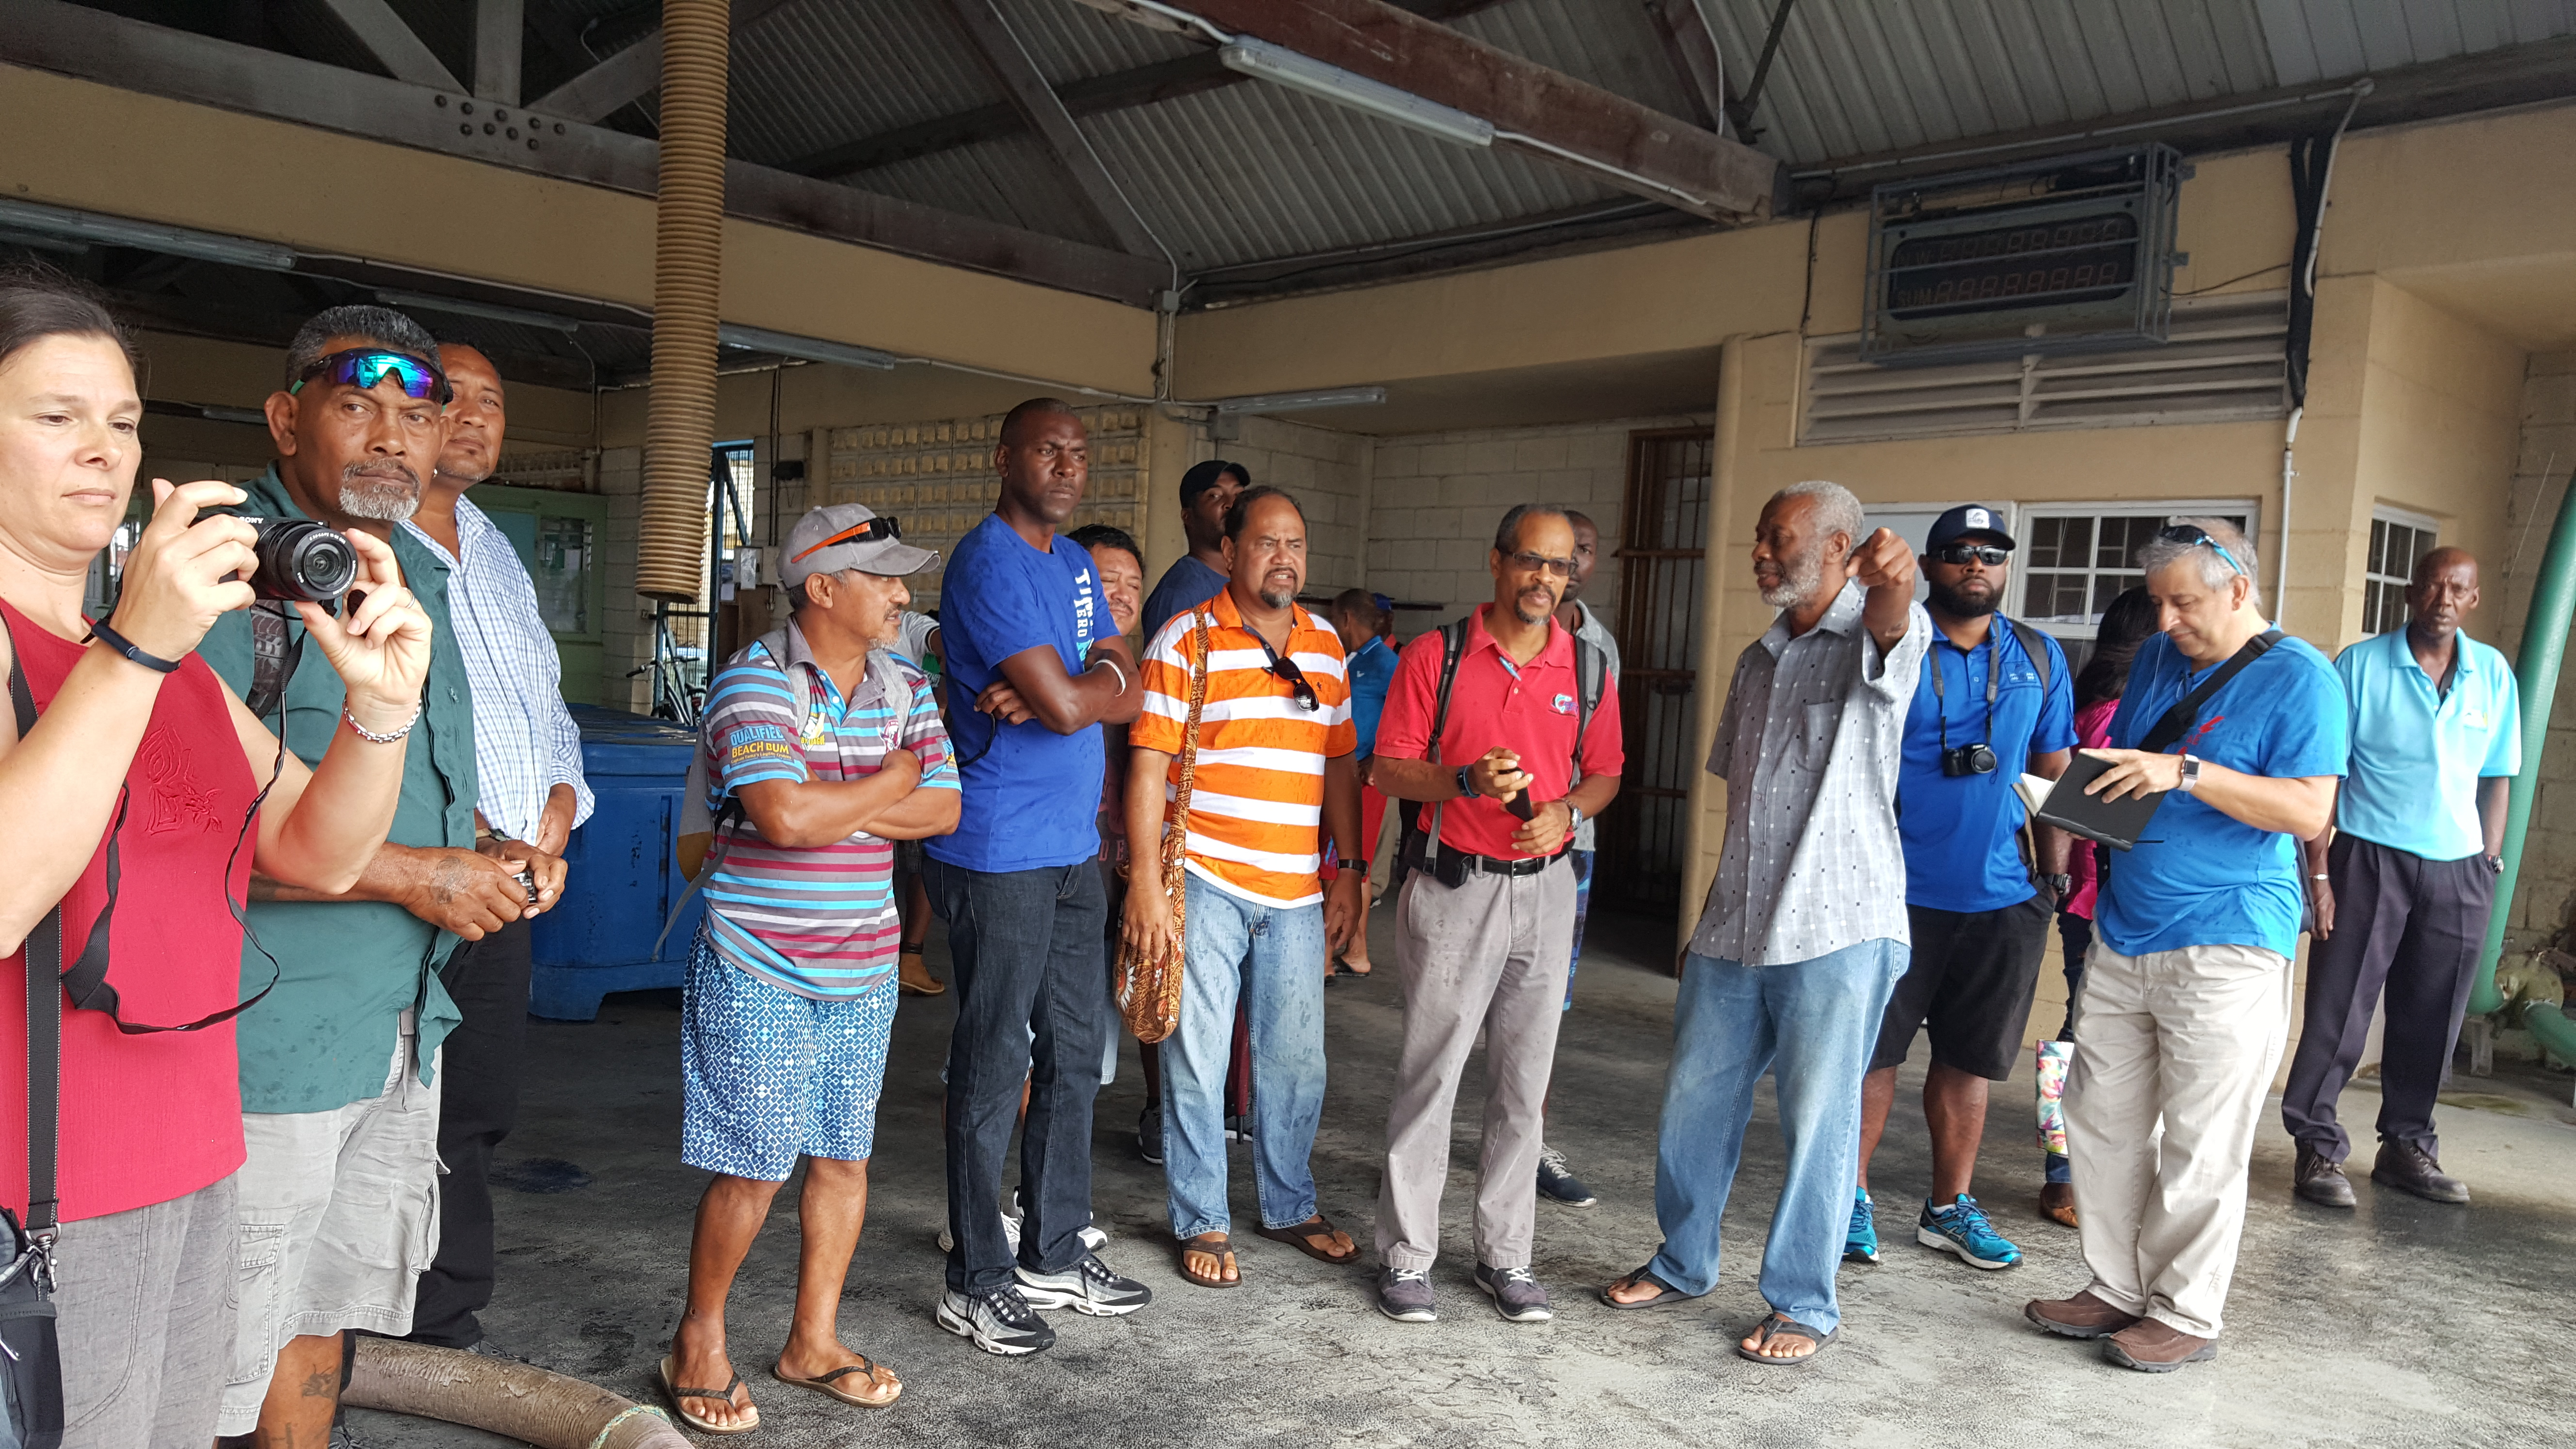 Participants from the Caribbean and Pacific SIDs visited fisheries sites in Barbados